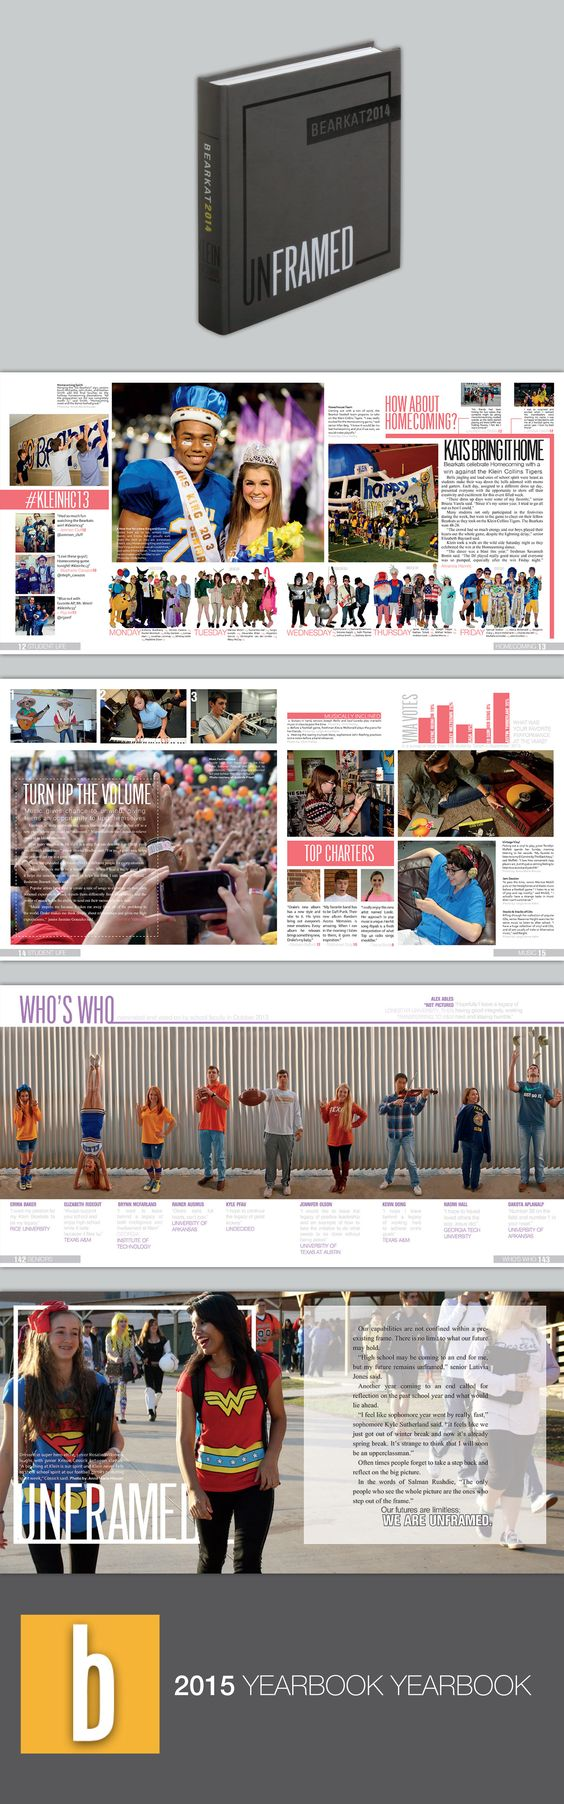 images about yearbook on pinterest